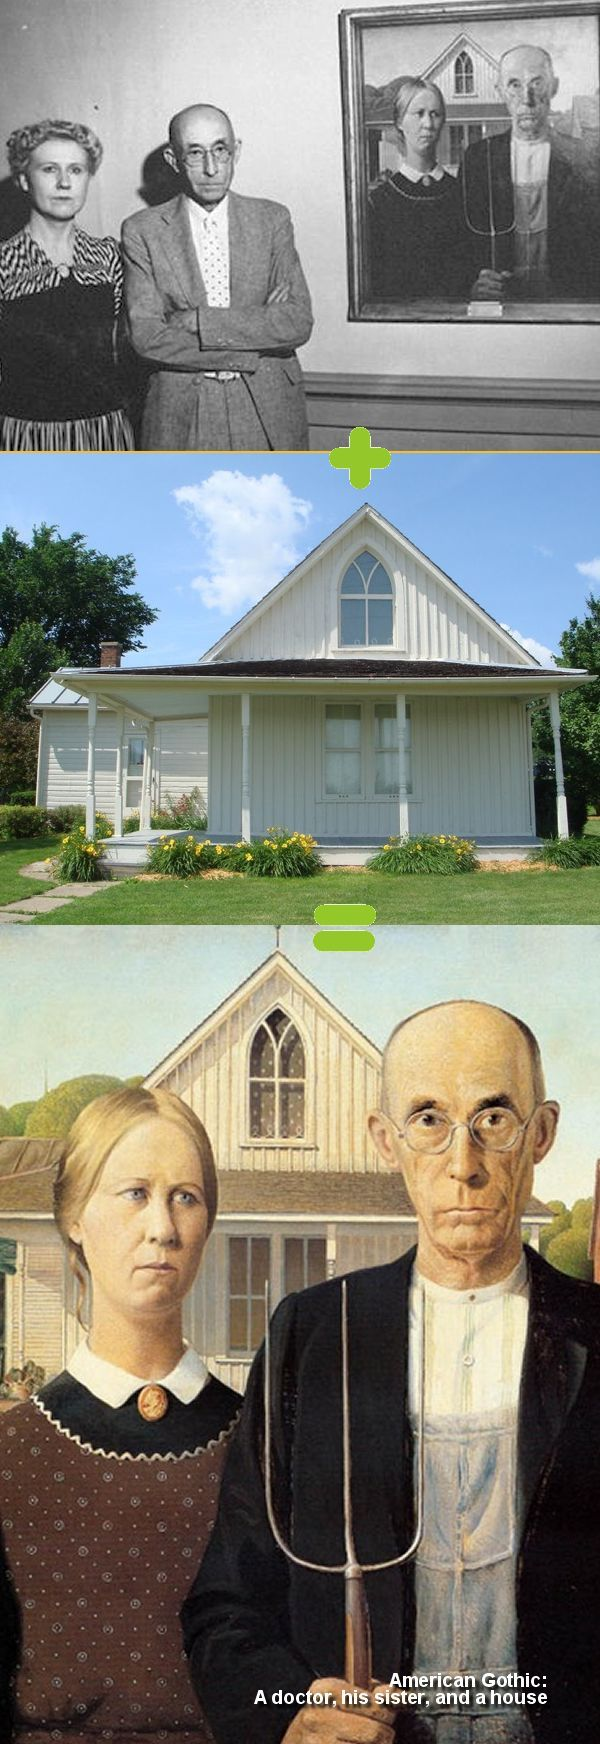 American Gothic - A doctor and his sister and a house